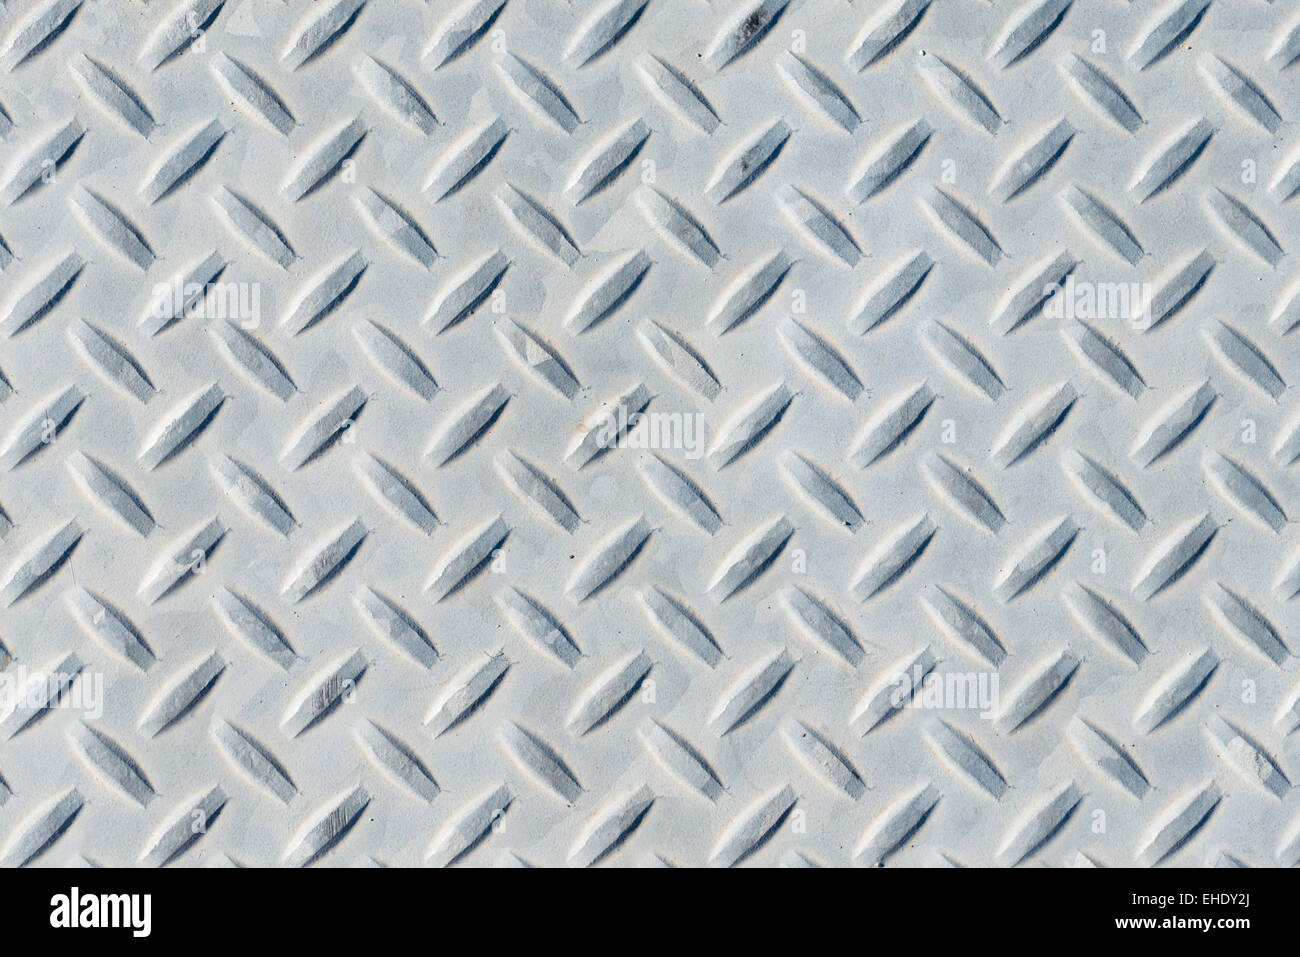 diamond plate background.html